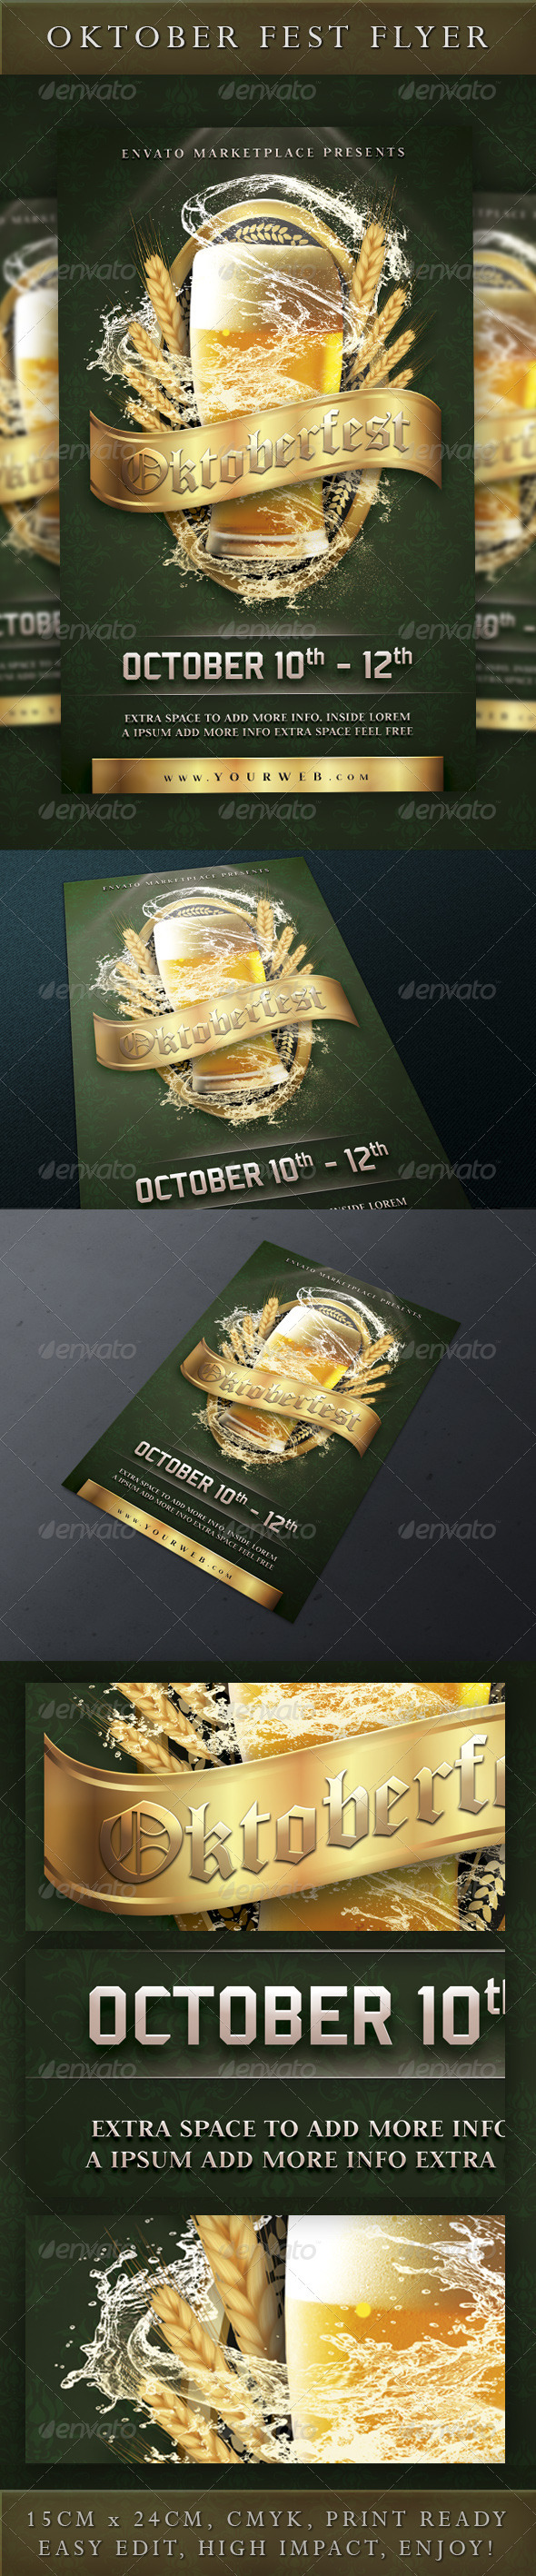 Oktoberfest Event Flyer Template - Holidays Events